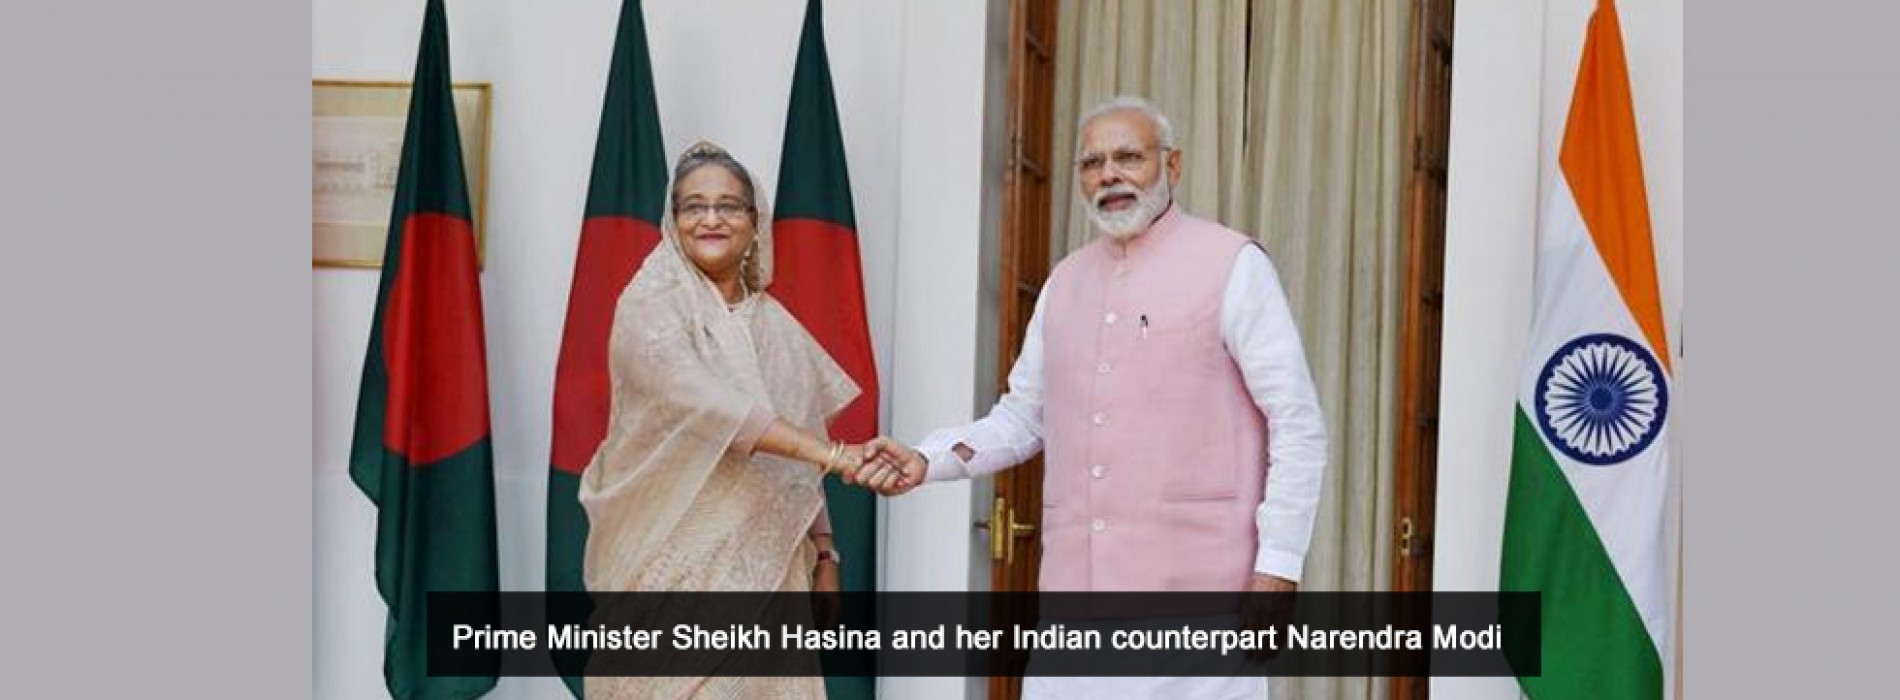 Hasina and Modi launched new cross-country train service